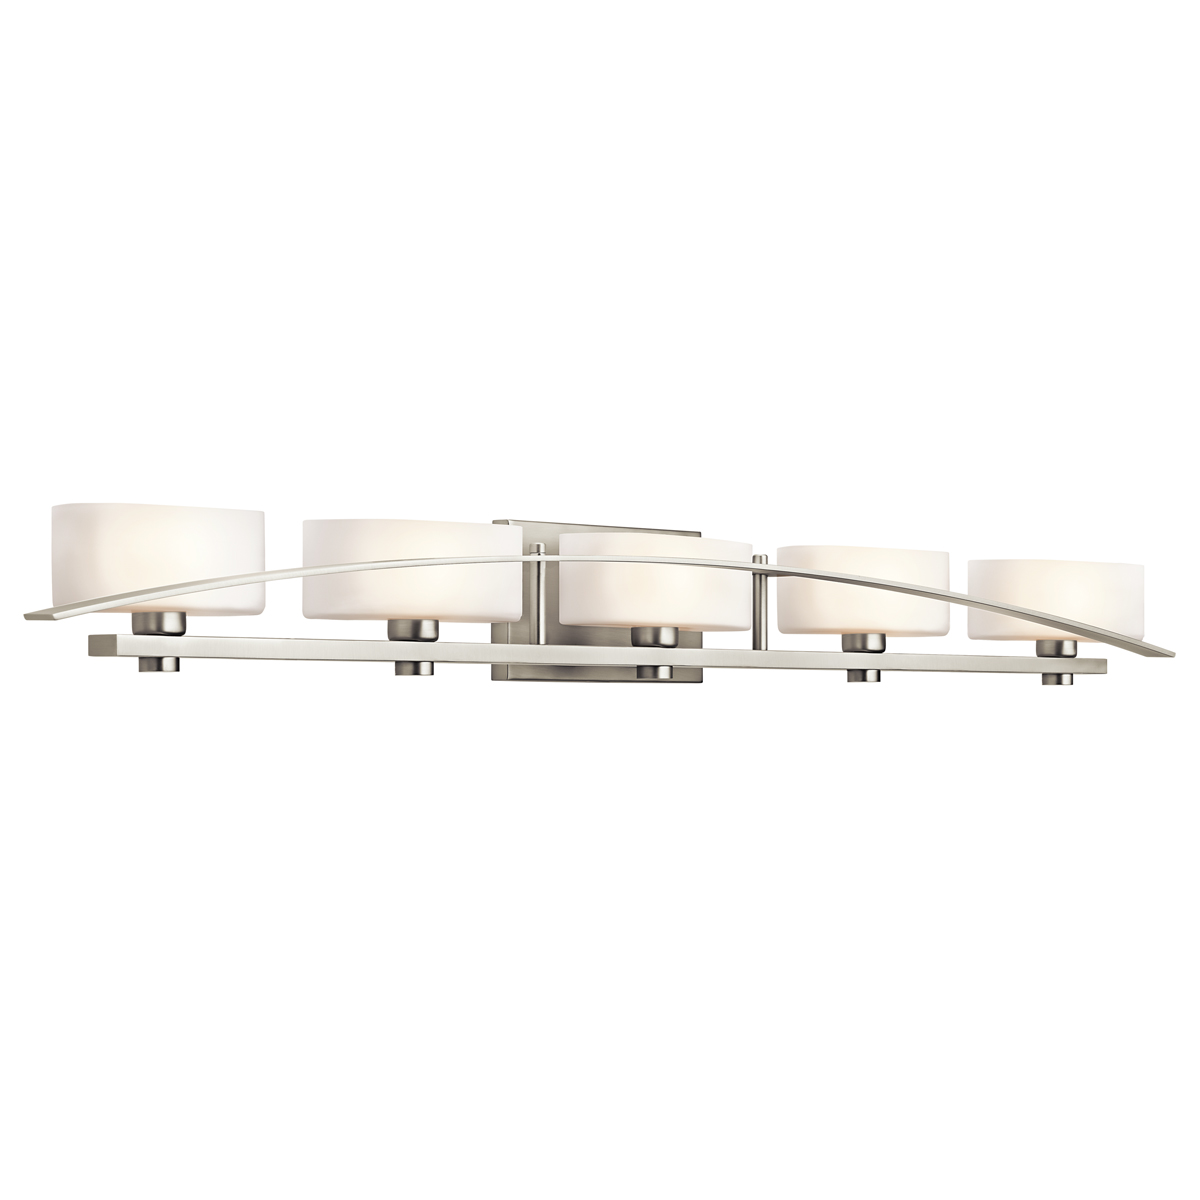 Kichler lighting 45319ni suspension 5 light bath fixture for Bathroom 5 light fixtures